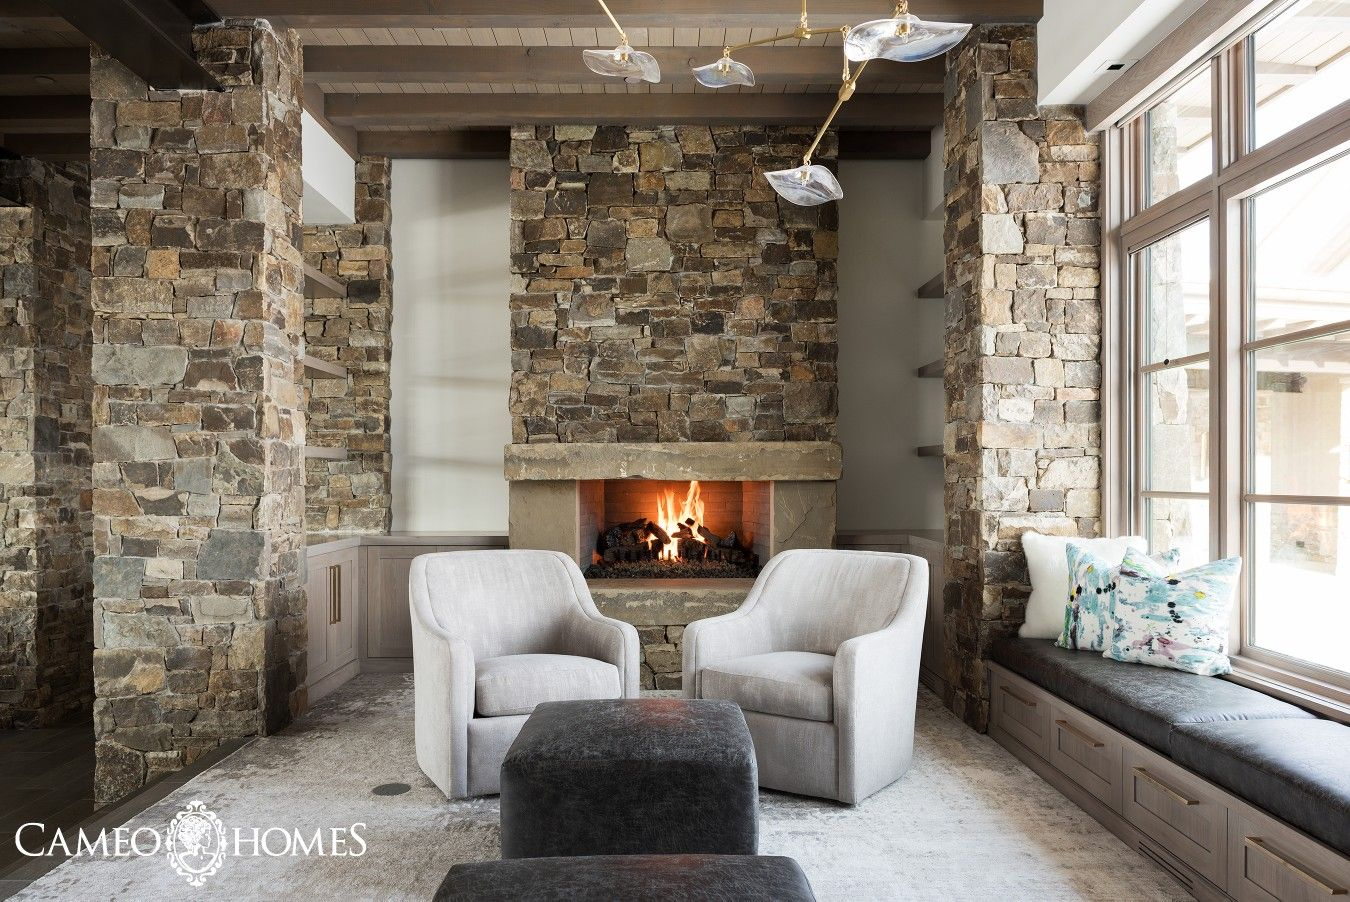 Exquisite Sitting Room Off Of The Kitchen In This Mountain Modern Home By  Cameo Homes Inc. In Utah.